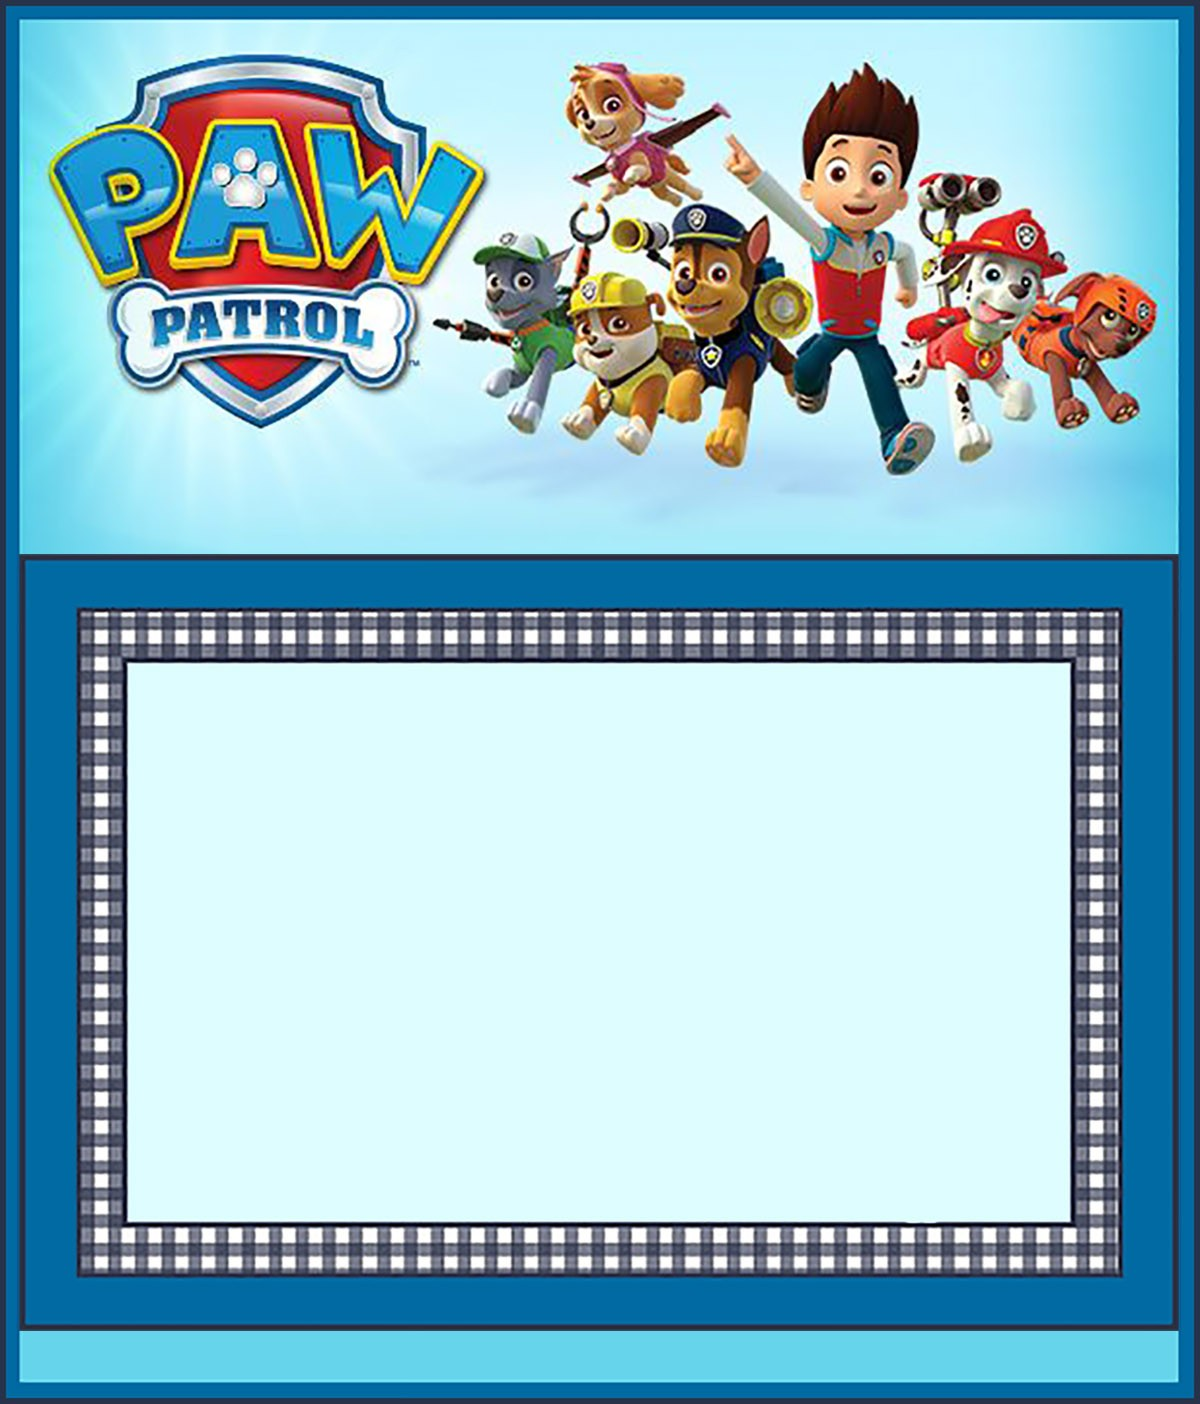 Free Paw Patrol Invitation Template Invitations Online - Paw patrol invitation template